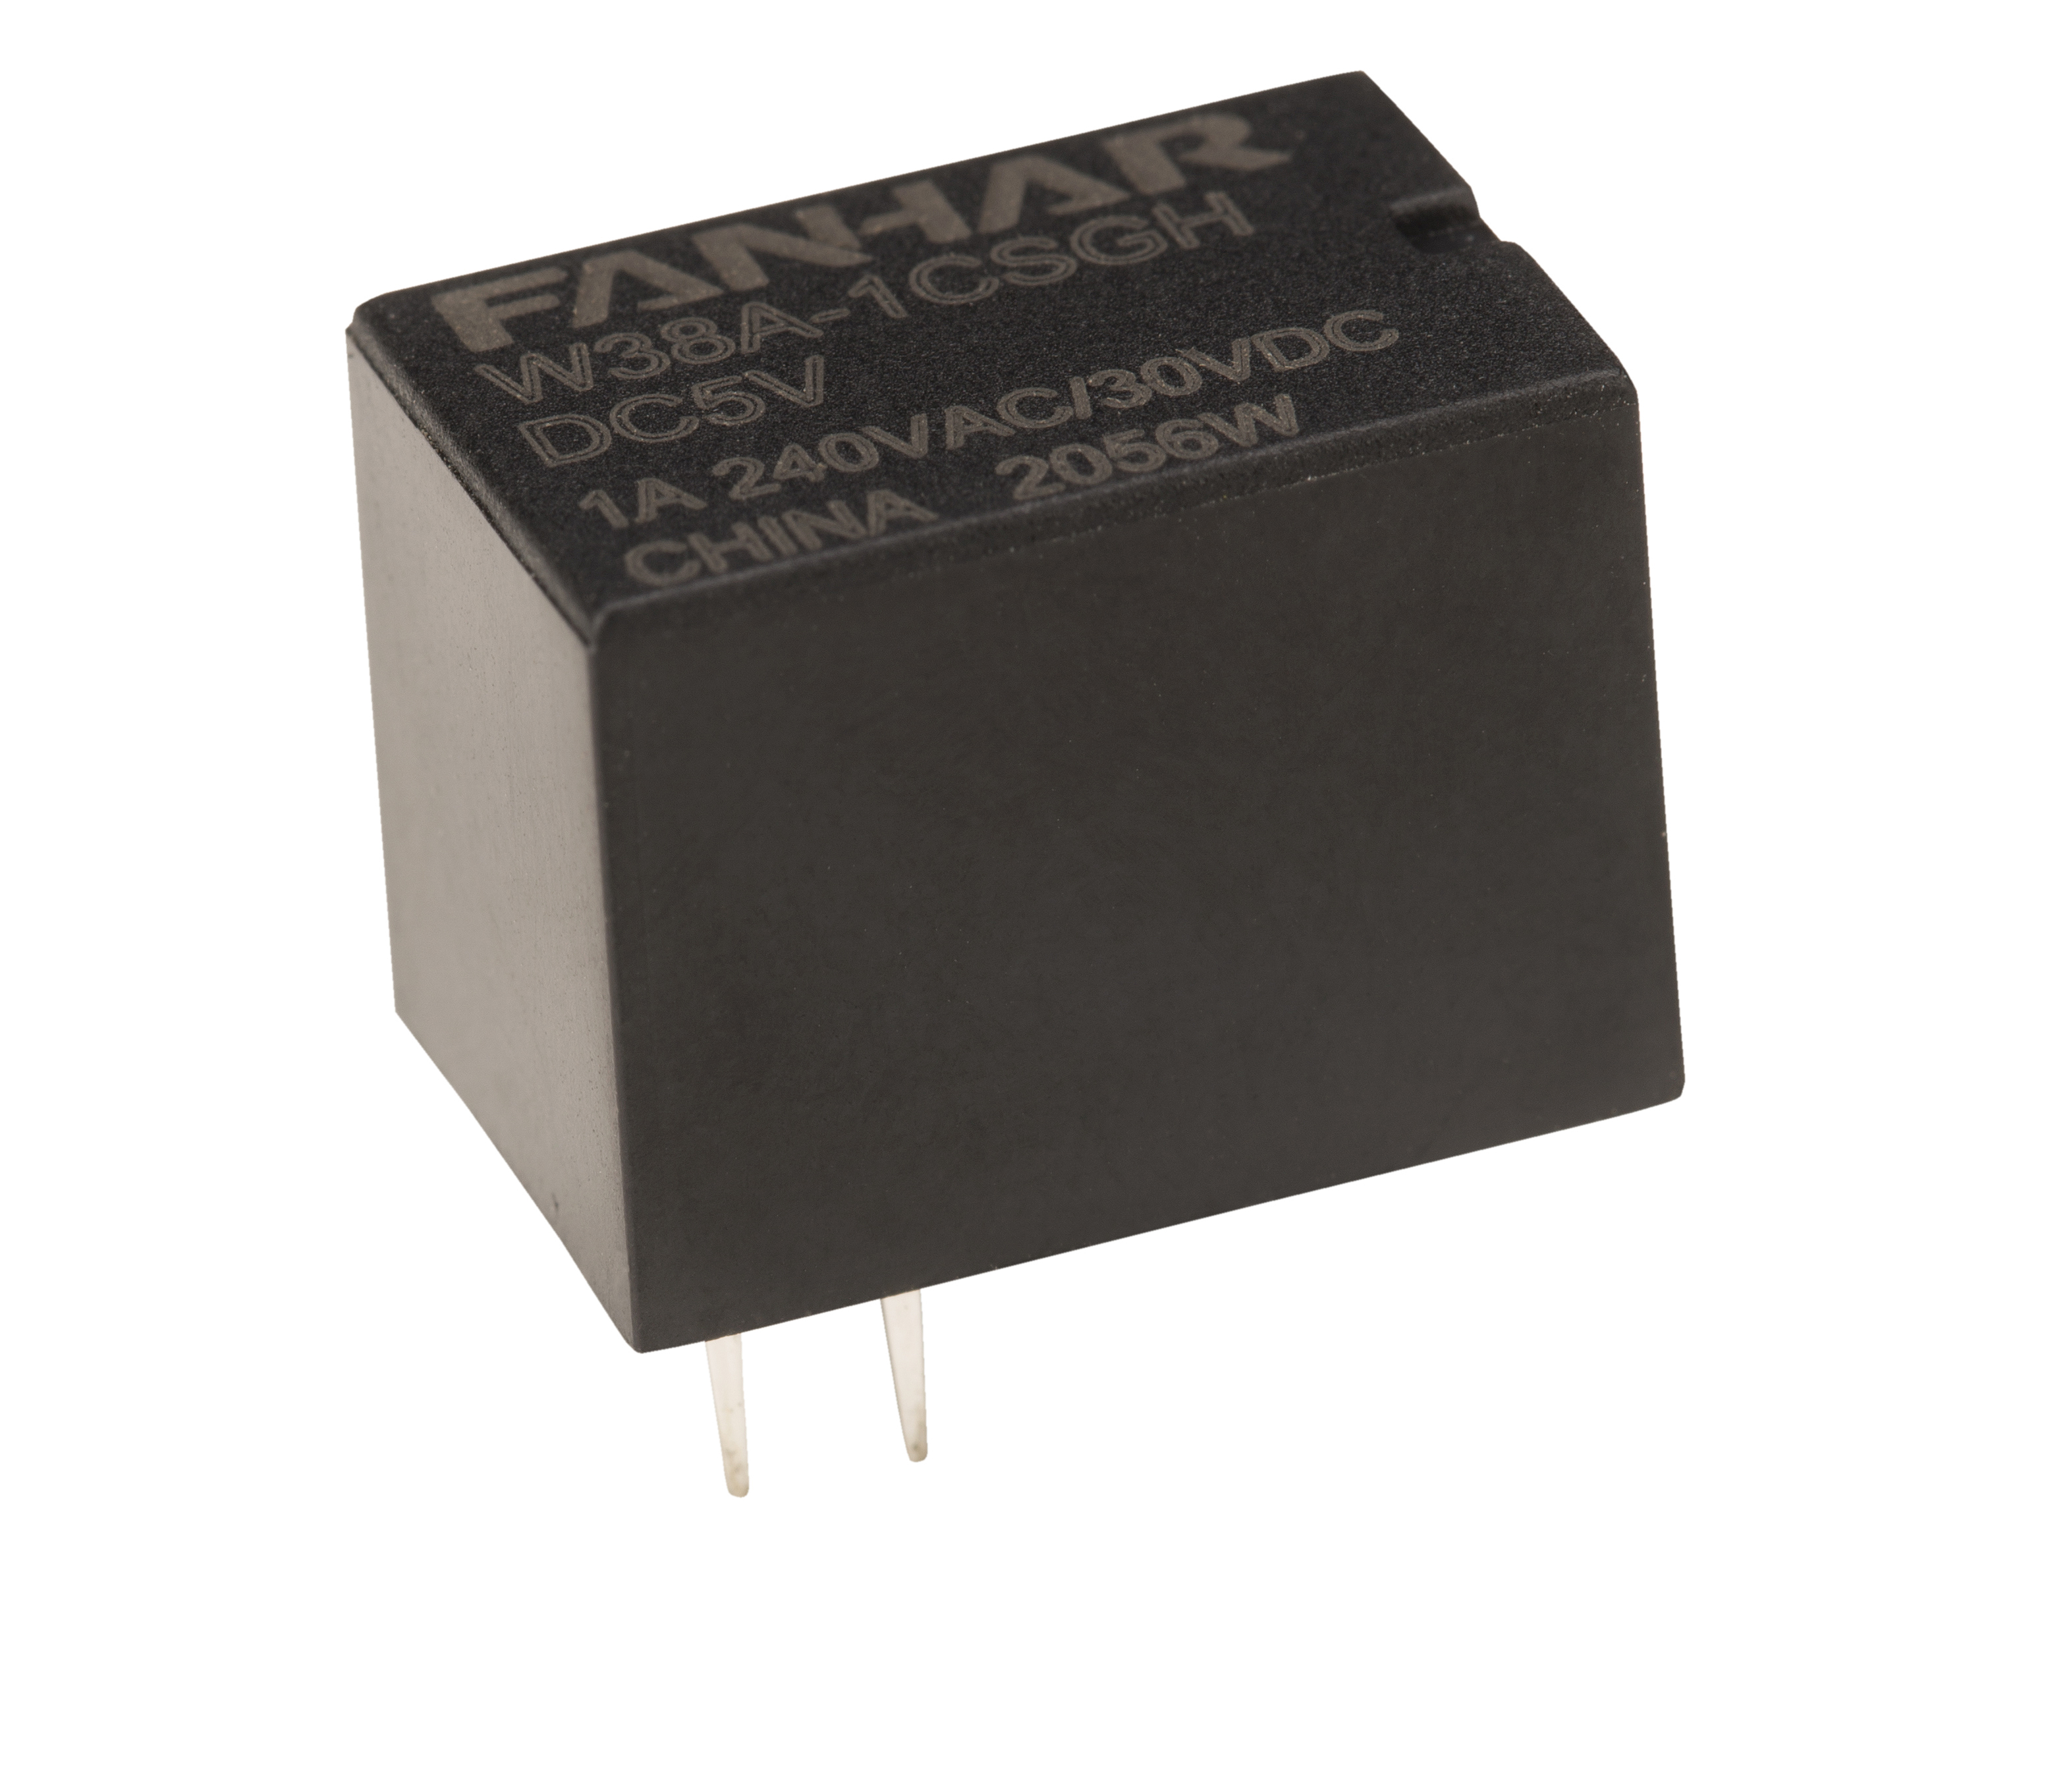 W38/W38A Songchuan Type 3A 120VAC Relay with <strong>ROHS</strong> Verification